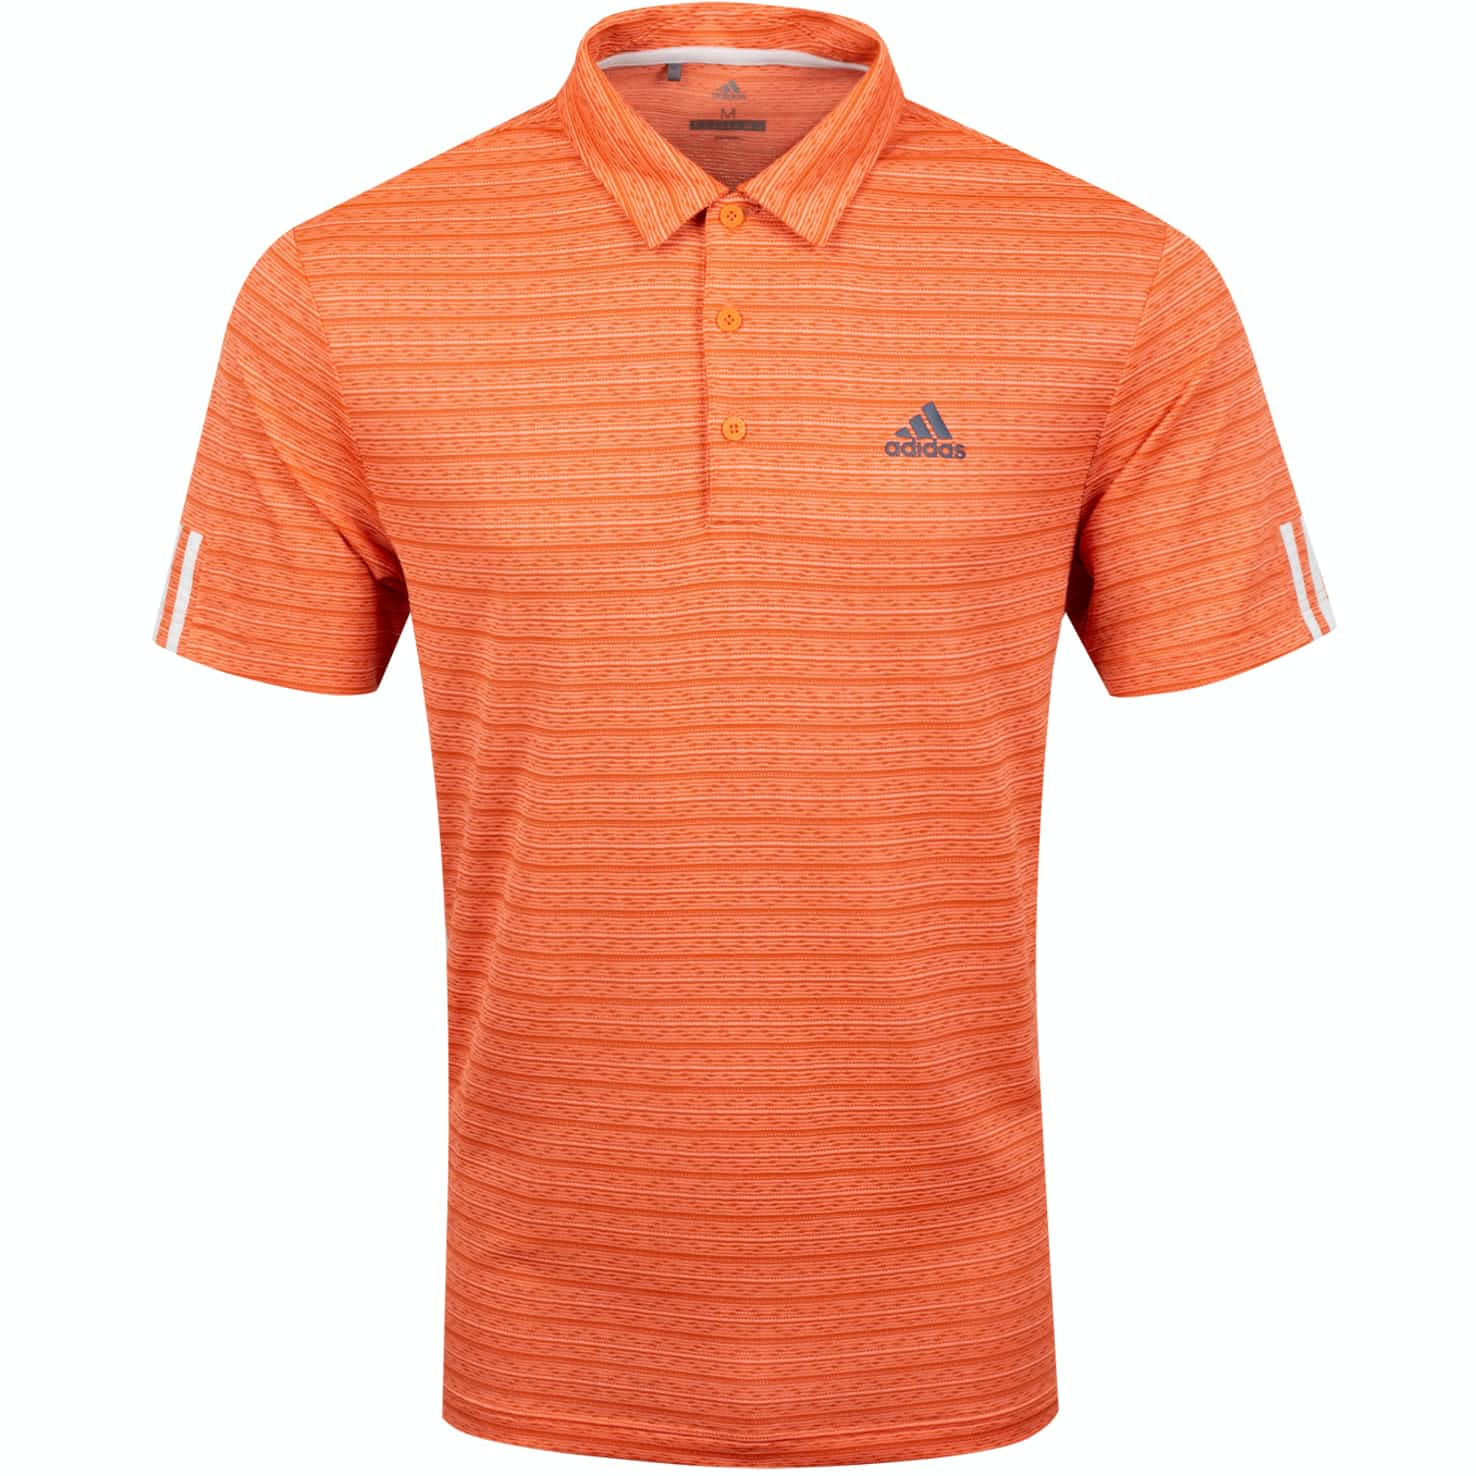 Collection 0 3-Stripe Polo Amber Tint/Coral - SS20